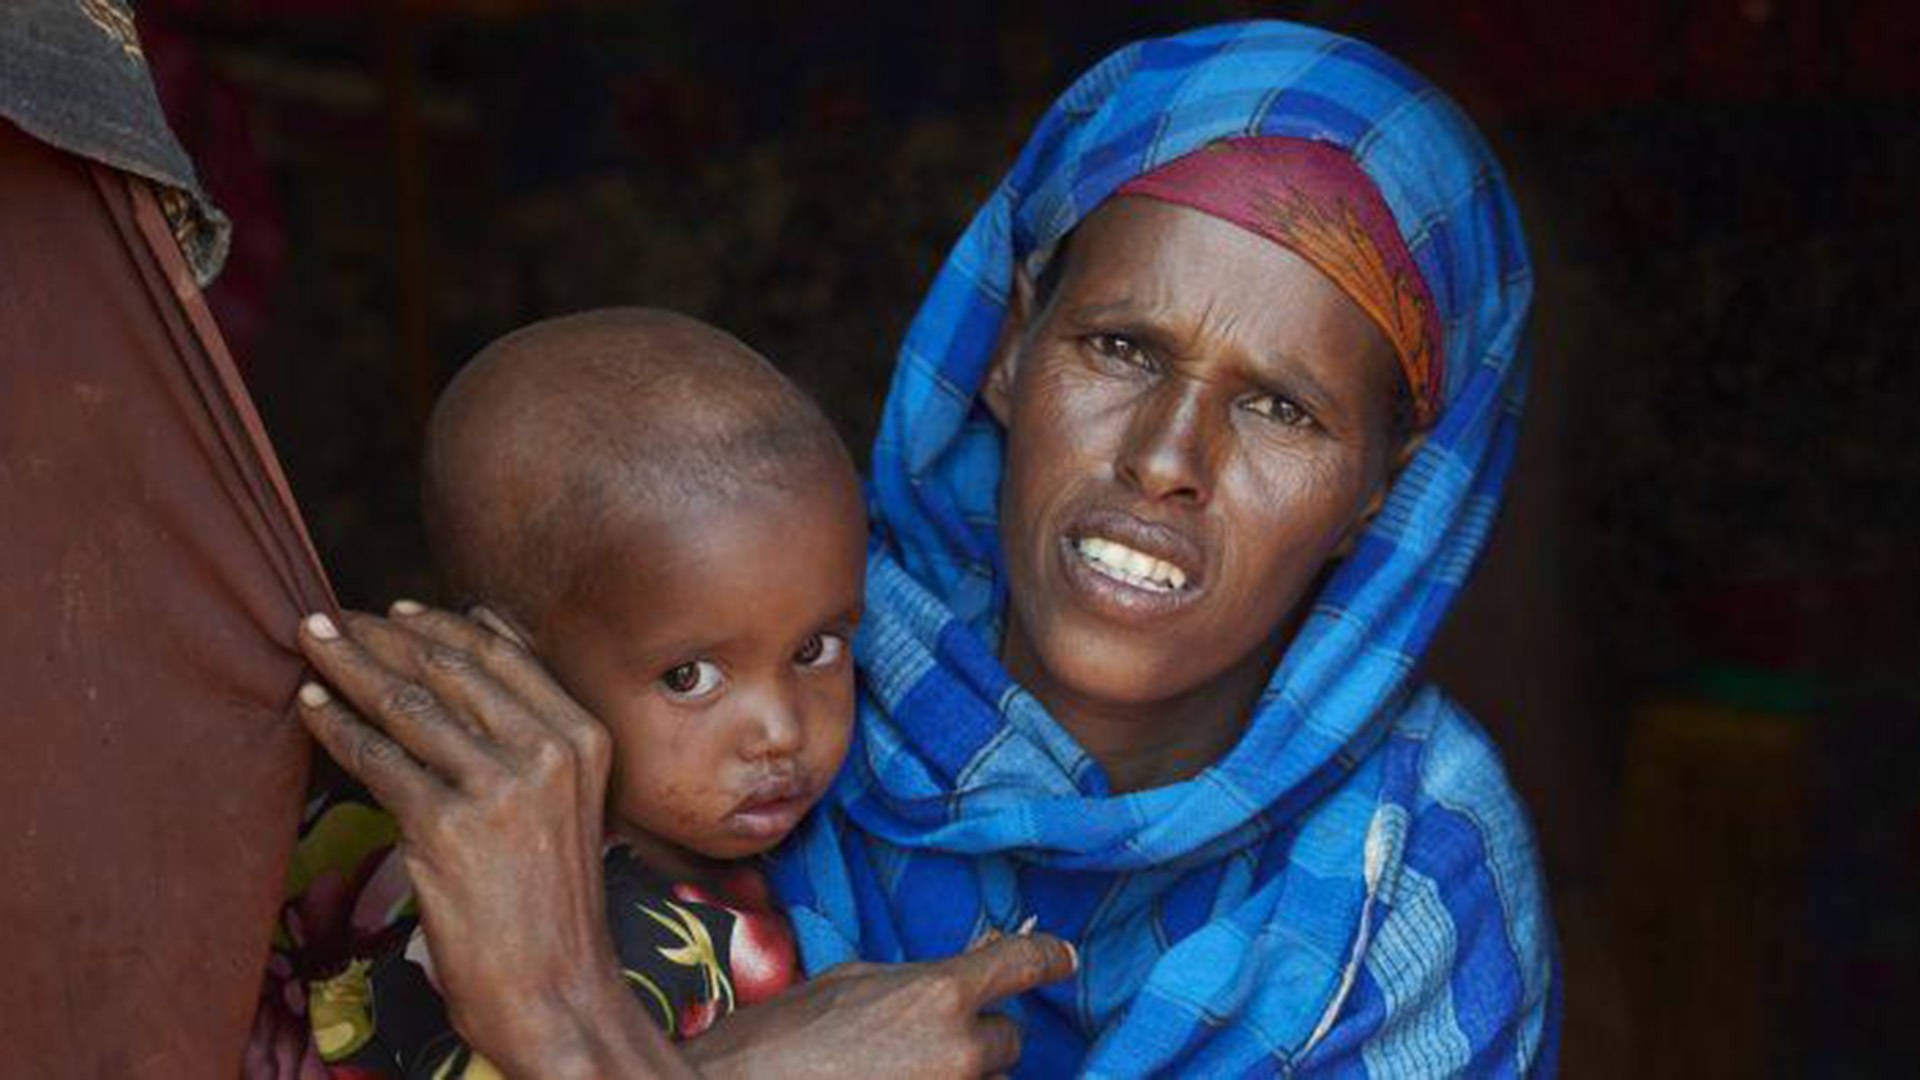 ethiopians and the problem of starvation Don't forget ethiopia starvation risk, says german ngothe menschen für menschen charity has said 57 million ethiopians could die of a lack of food.